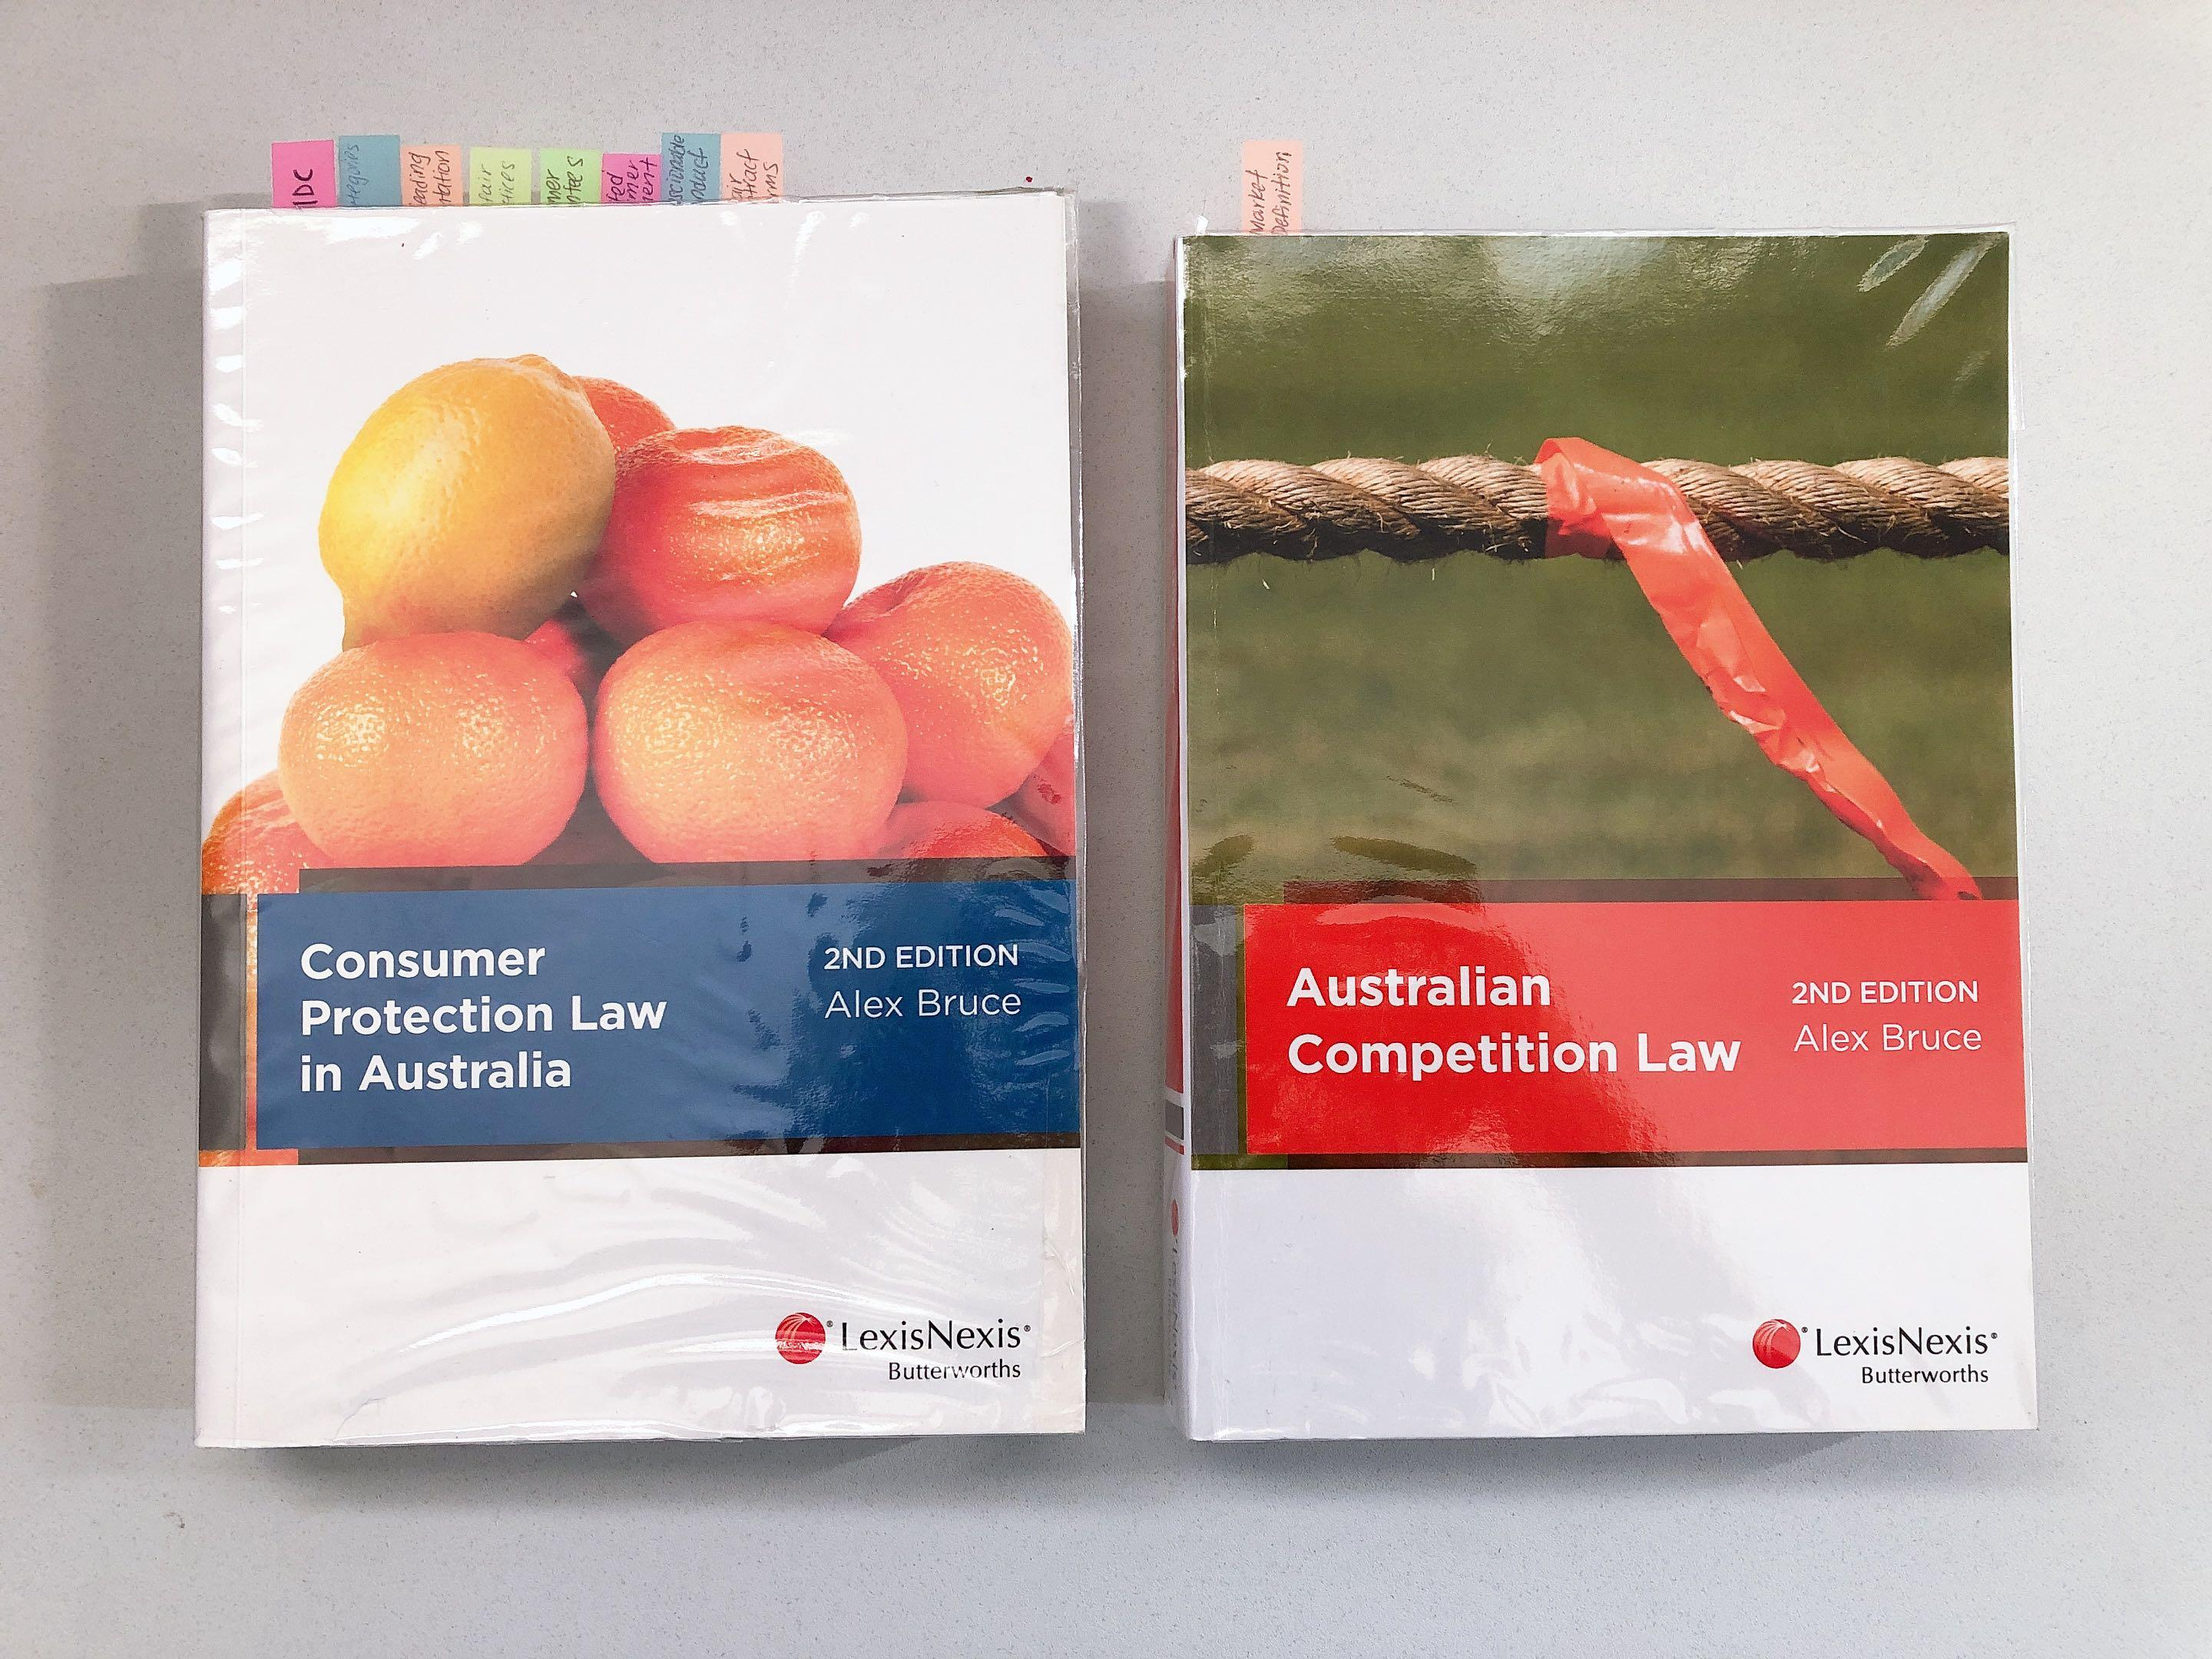 Consumer protection law in australia & Australian competition law 2nd edition Alex Bruce